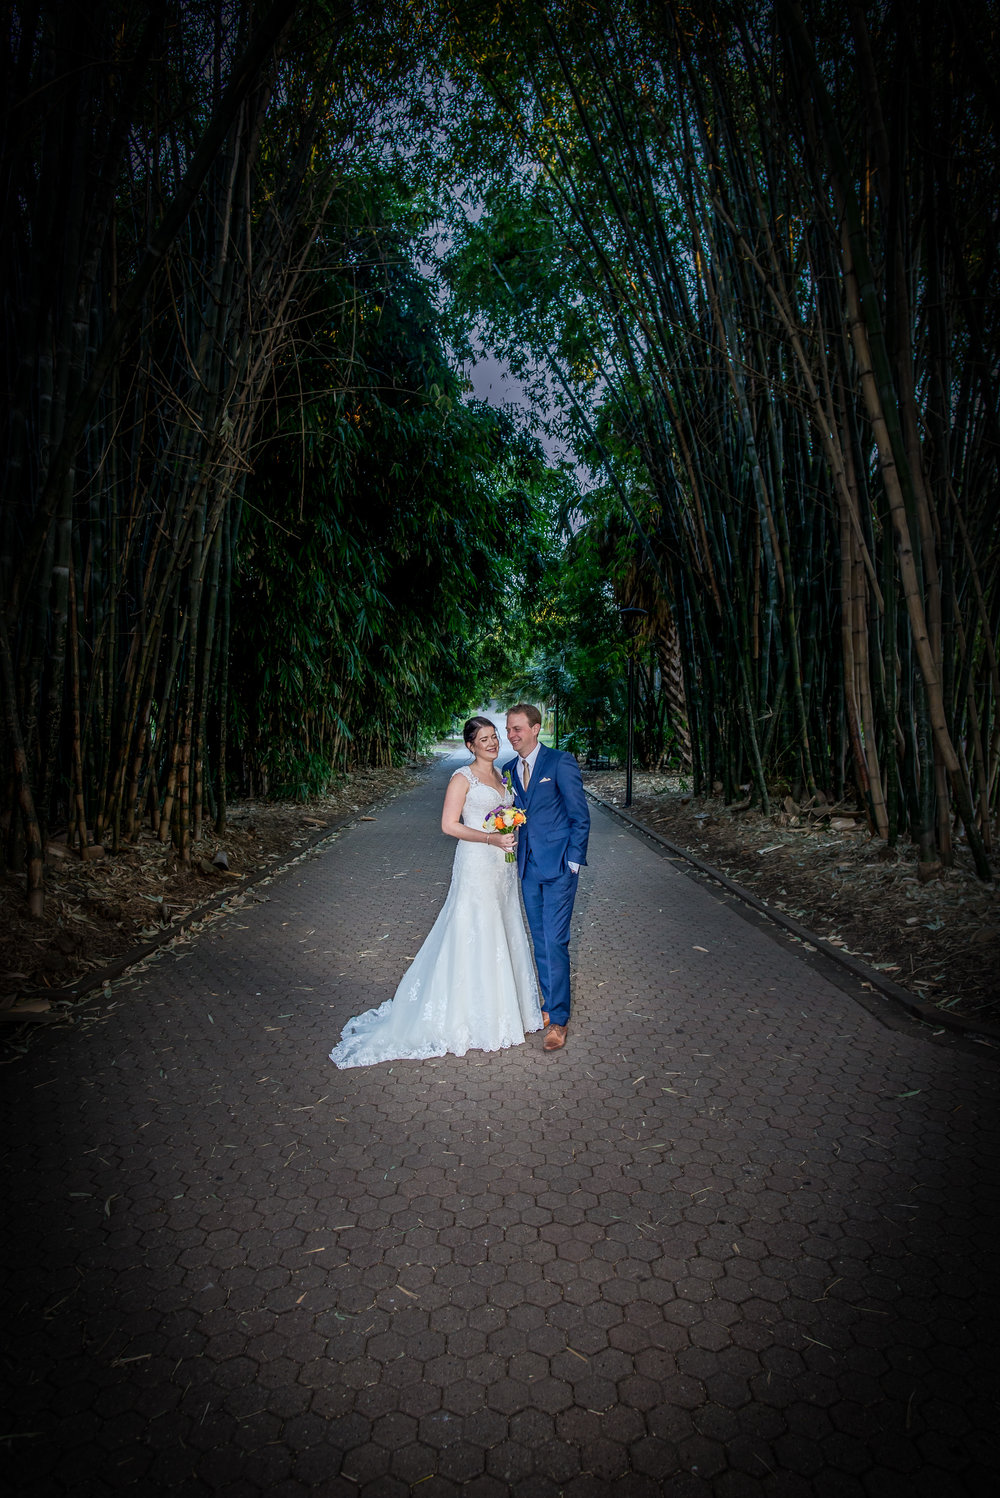 Amanda & Marc - Brisbane Queensland